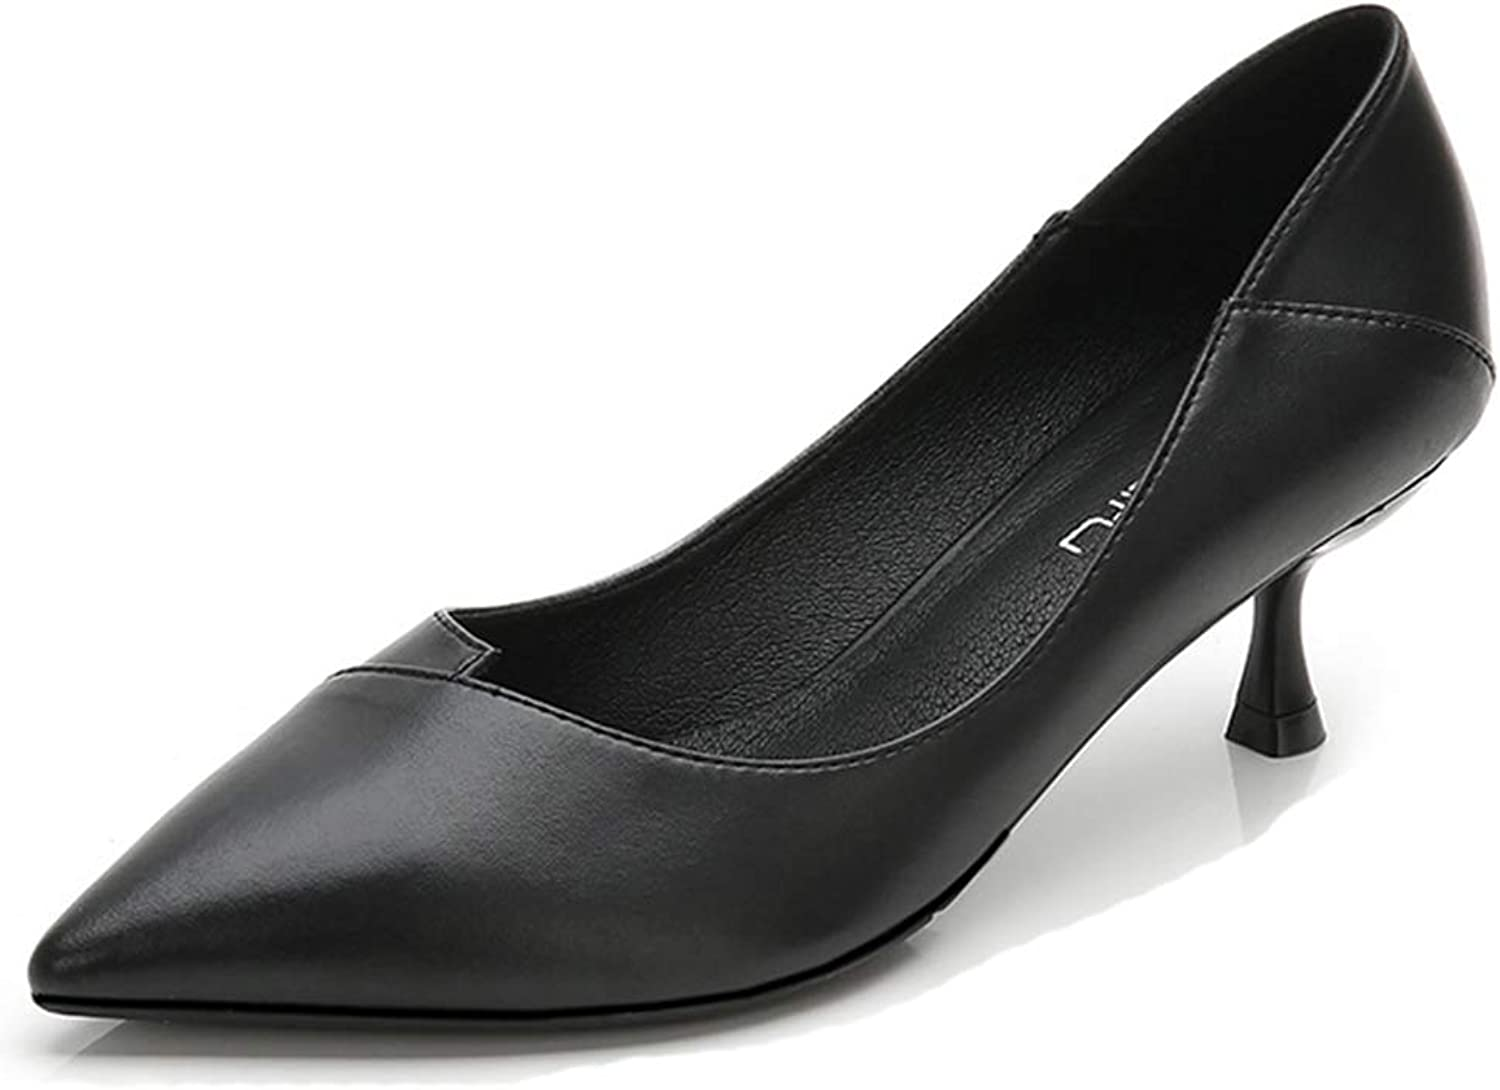 Soulength Women's Classics High Heels Point Toes Small Plus Size Ladies Pumps Non Slip Rubber Comfortable Fashion Work Office shoes(WH04,Black)